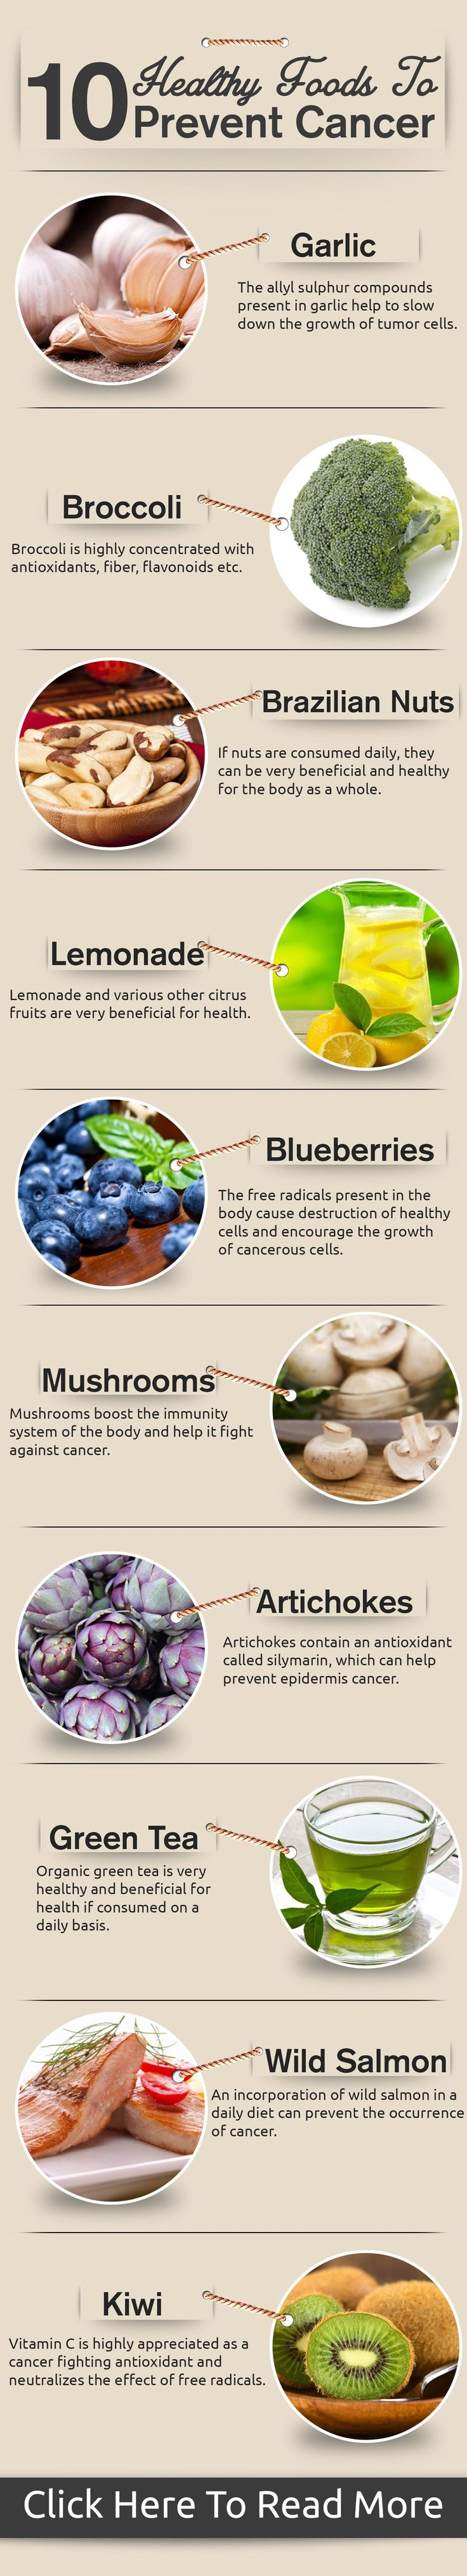 10 healthy foods to prevent cancer. #MindfulEating #CancerPrevention #HealthyEating www.OurMLN.com